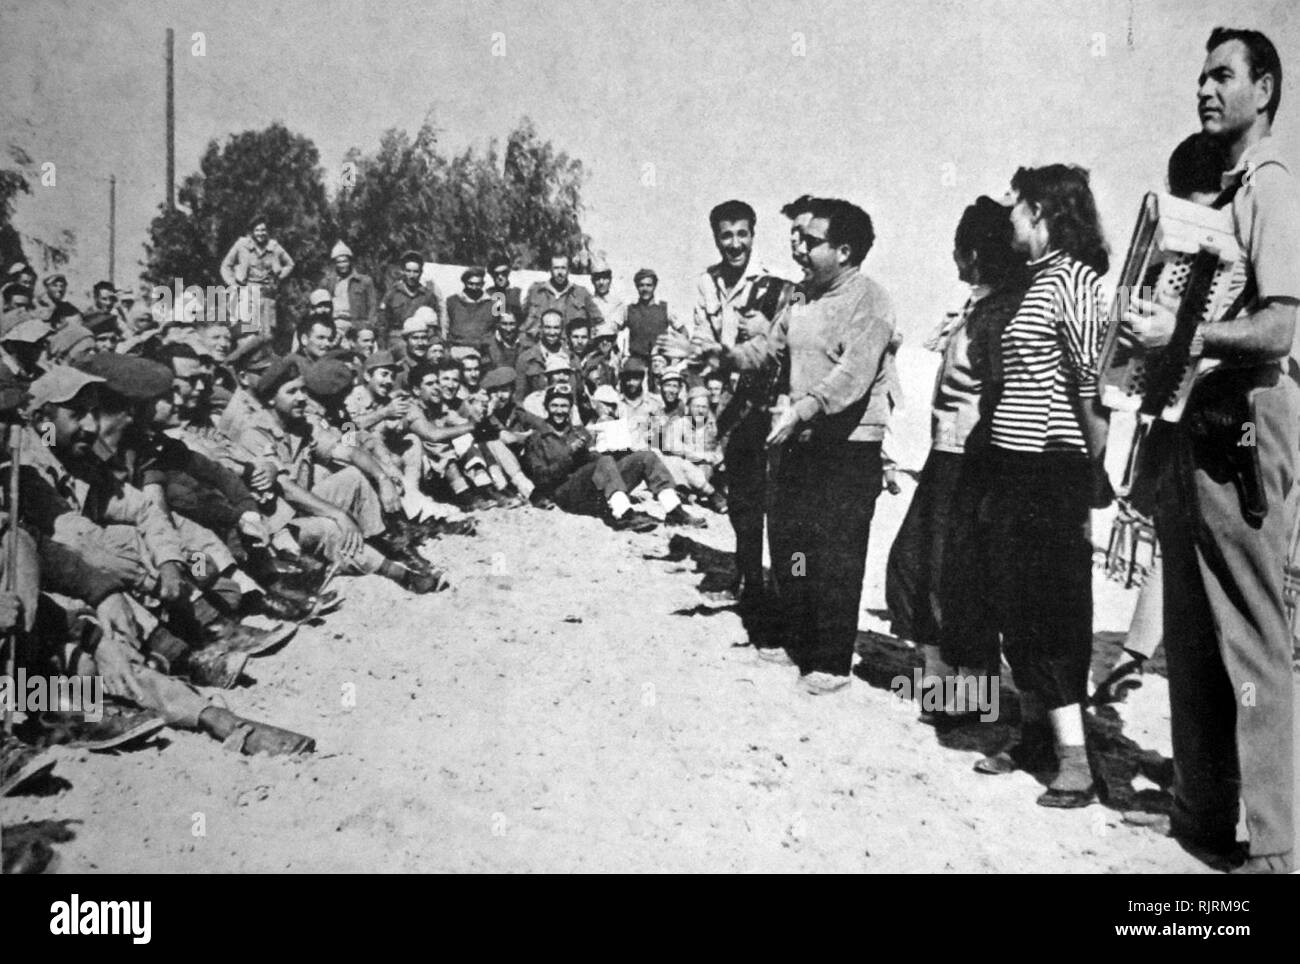 Zahal Israel Defence Forces entertainment troupe, circa 1965 - Stock Image